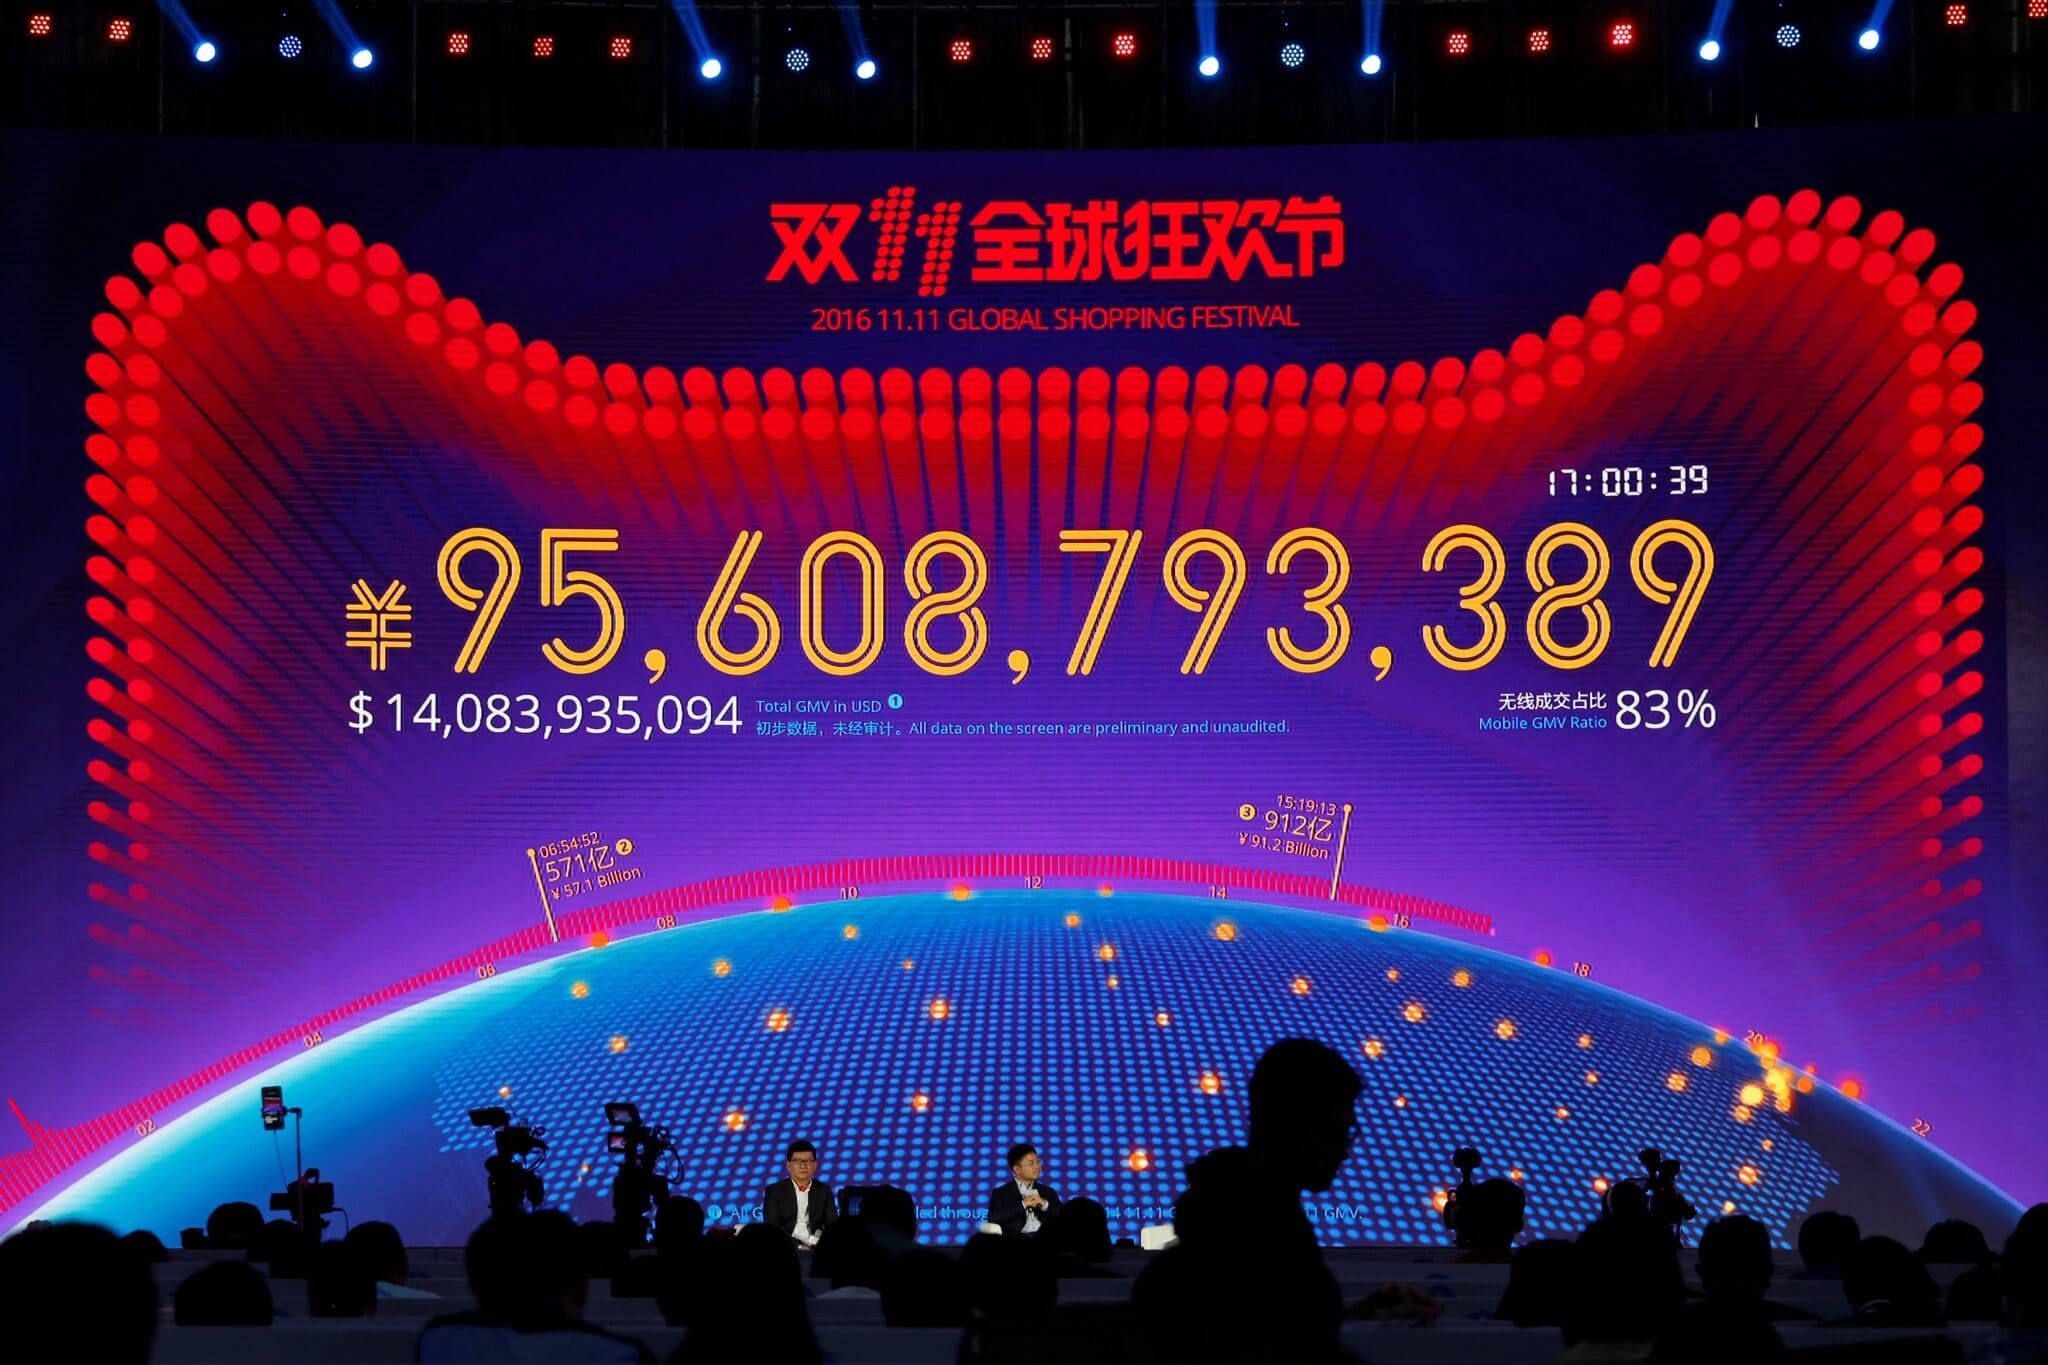 Alibaba sales on Single's Day (11.11) reach $18 billion in just 12 hours